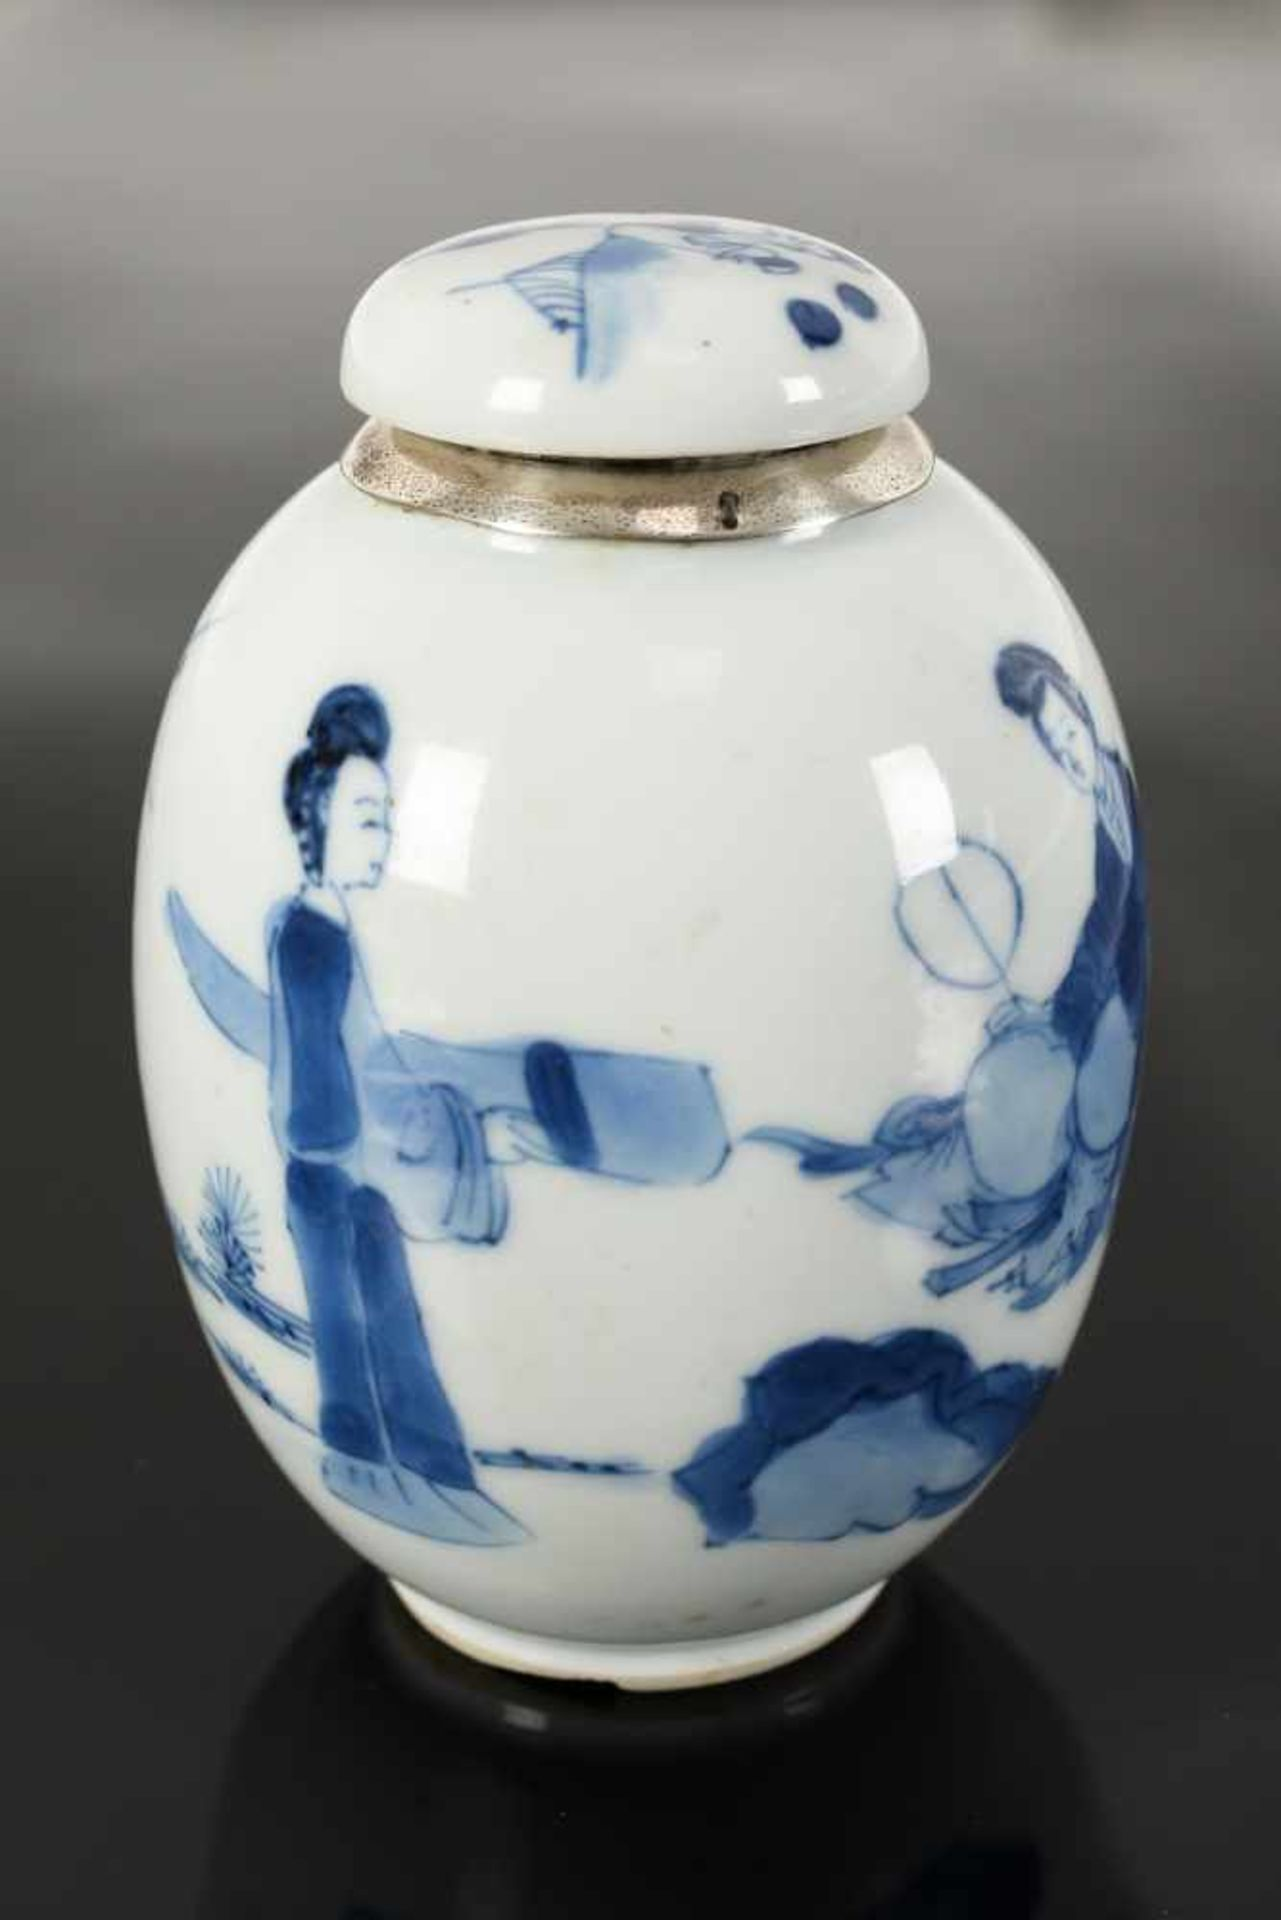 A blue and white porcelain lidded jar with later Dutch silver mounting, decorated with figures in - Bild 8 aus 11